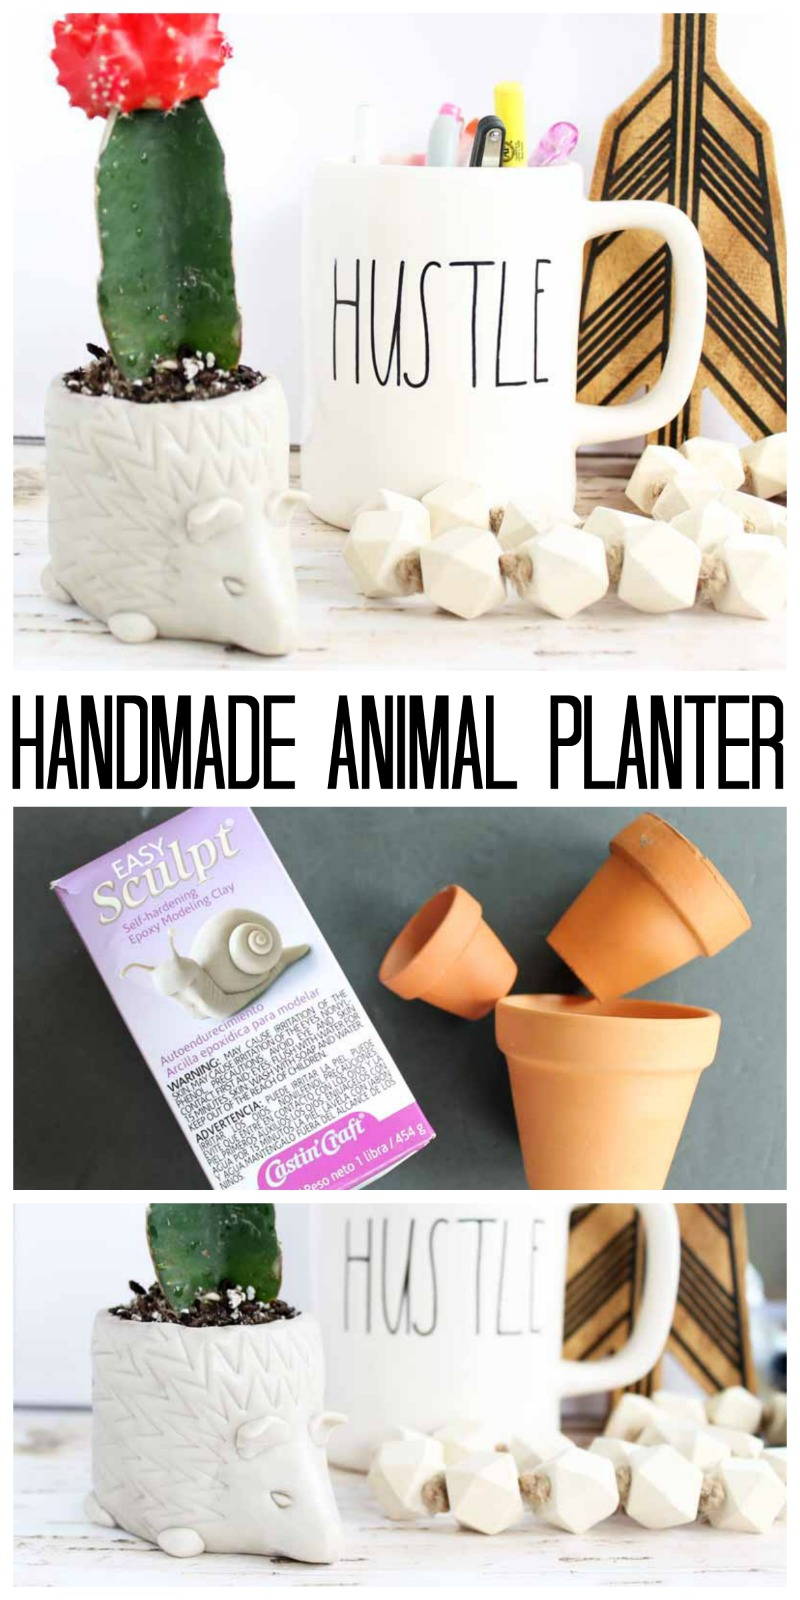 Make these DIY flower pots for your home in a cute animal shape! Easy to make to look like a hedgehog or any other animal!